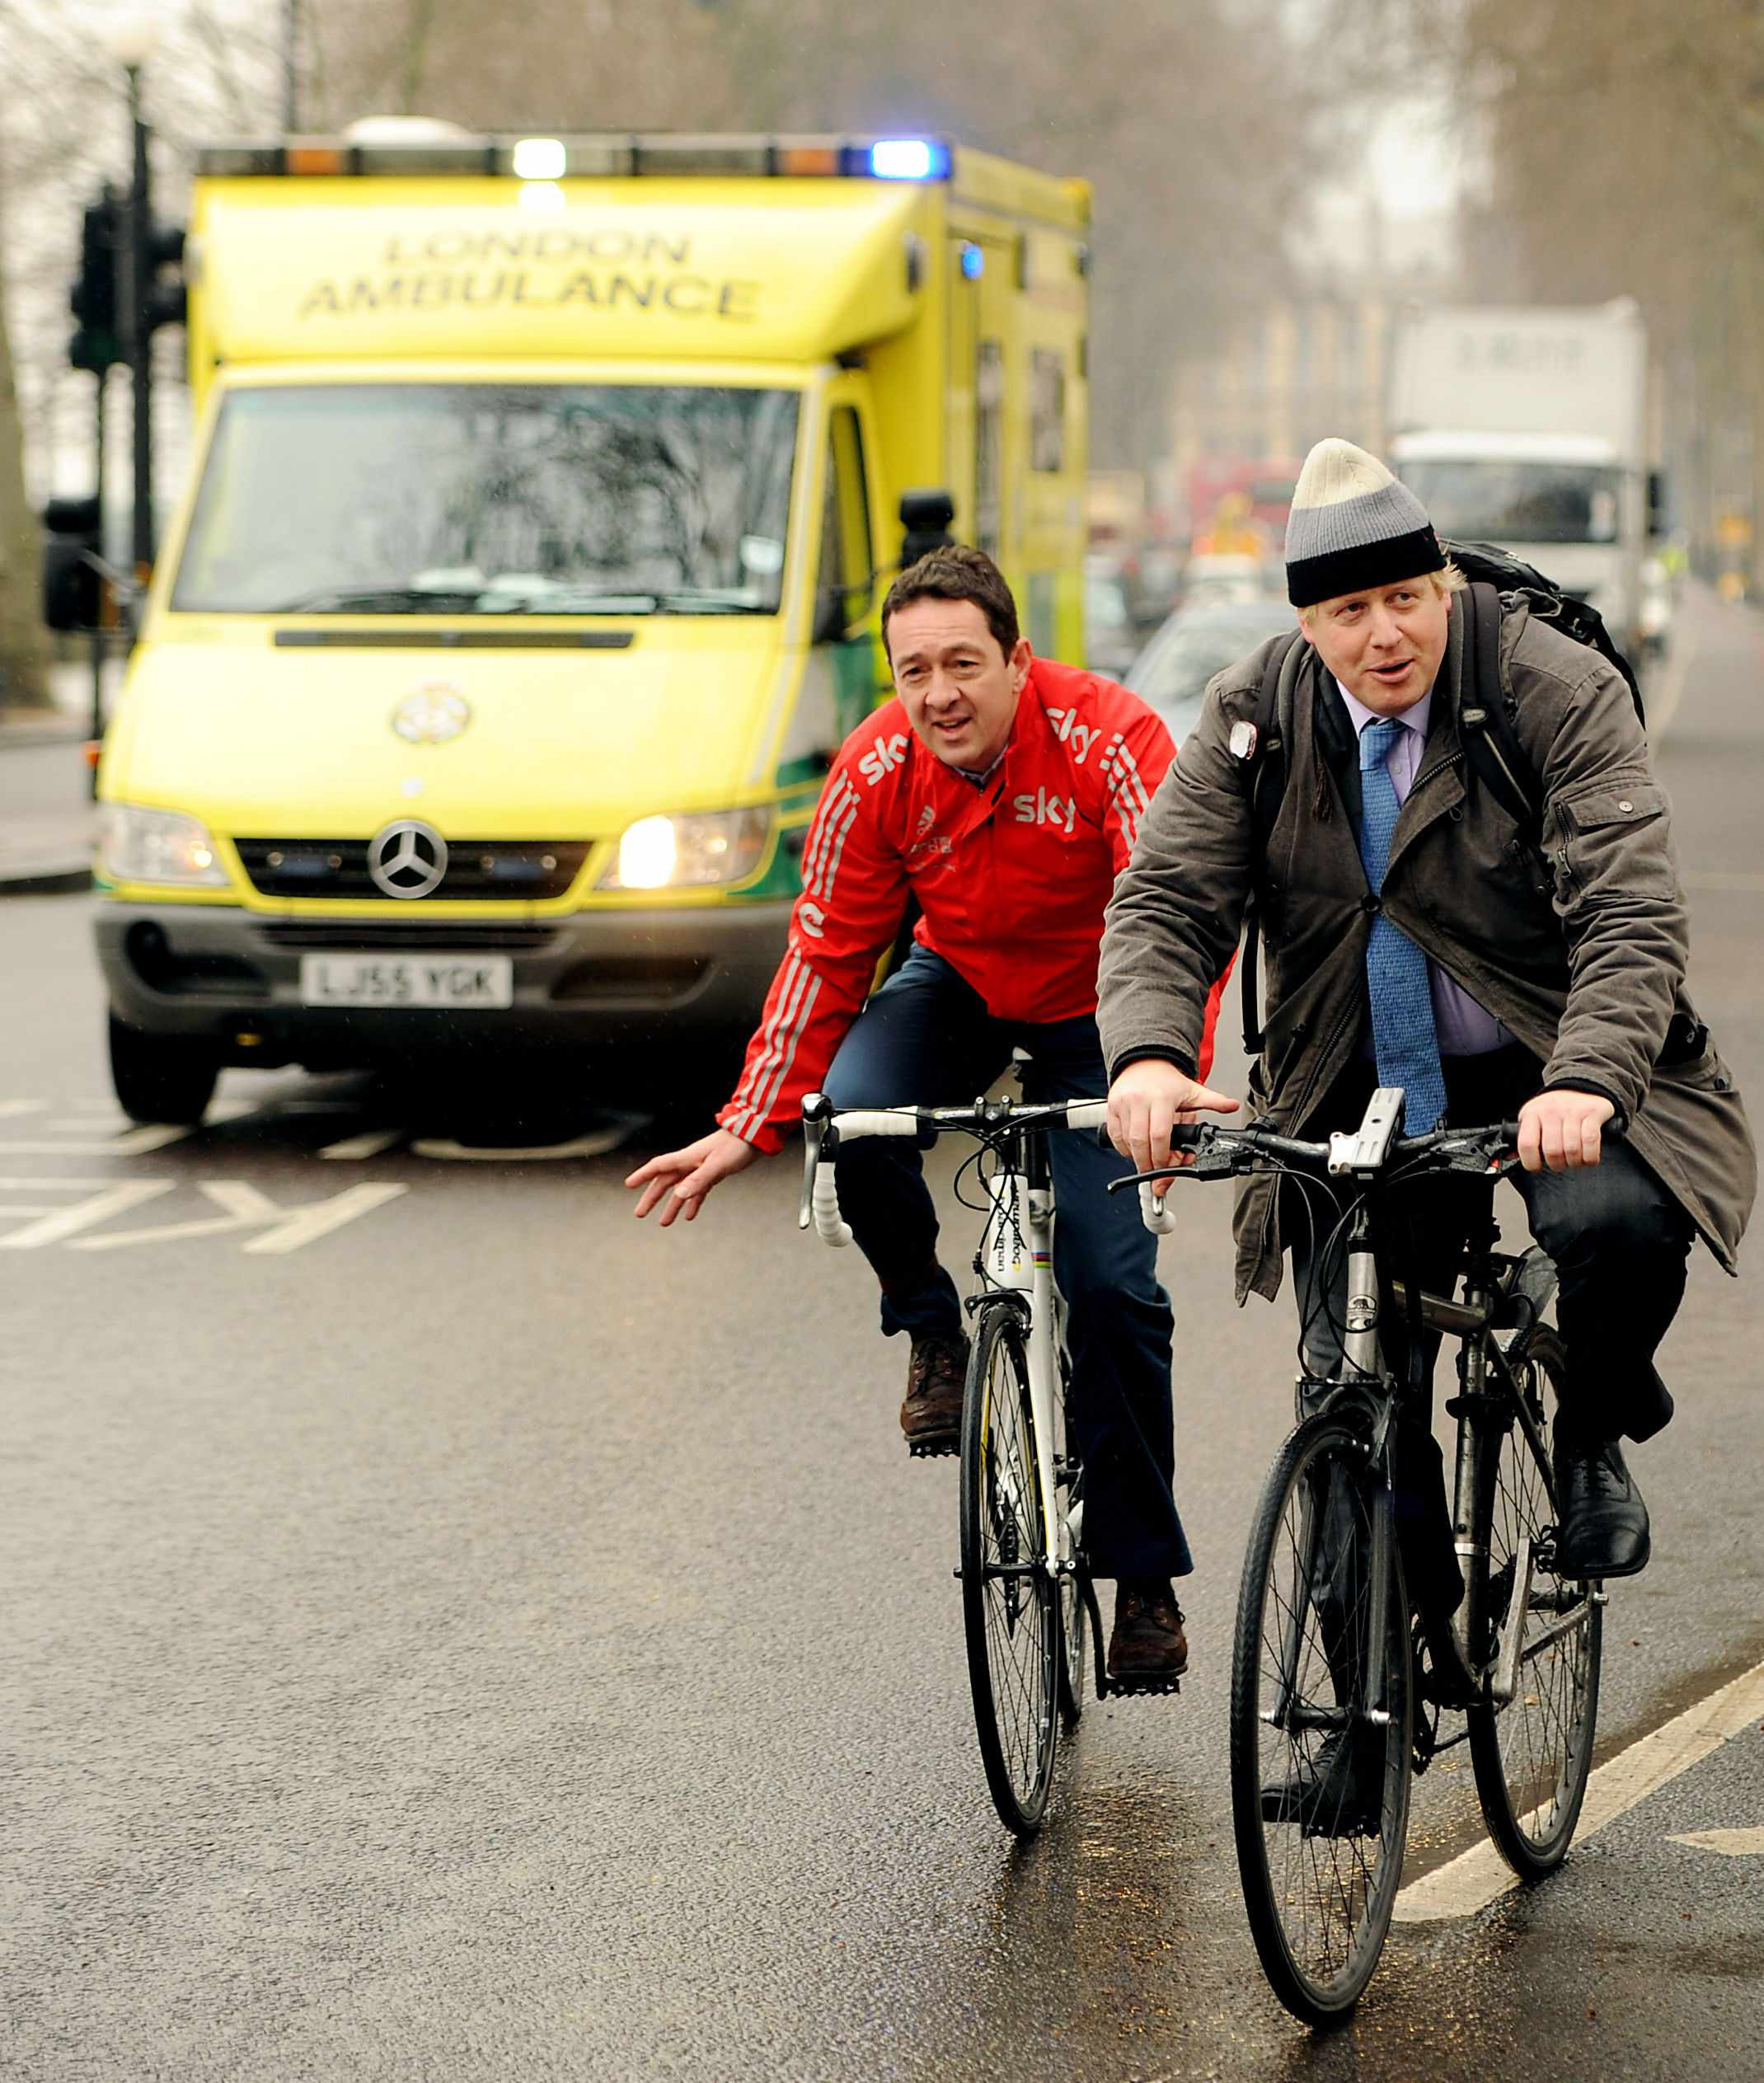 Boris Johnson promised Chris Boardman he wouls investigate whether London could follow Paris and ban HGVs in peak traffic